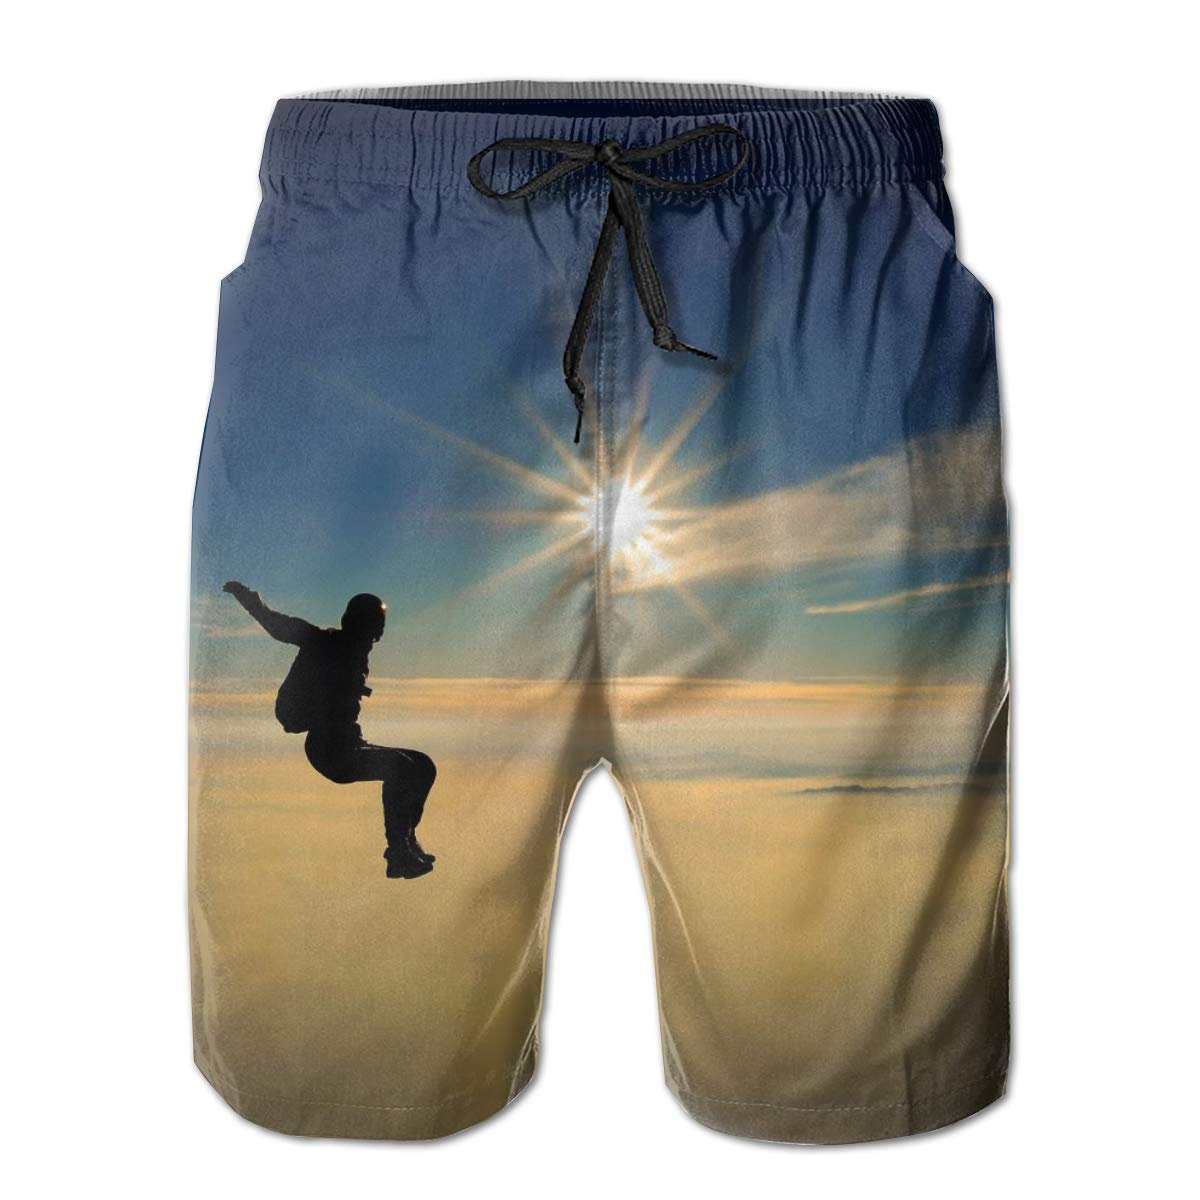 Skydiving Summer Holiday Mesh Lining Swimwear Board Shorts with Pockets Hateone Mens Beach Shorts Quick Dry